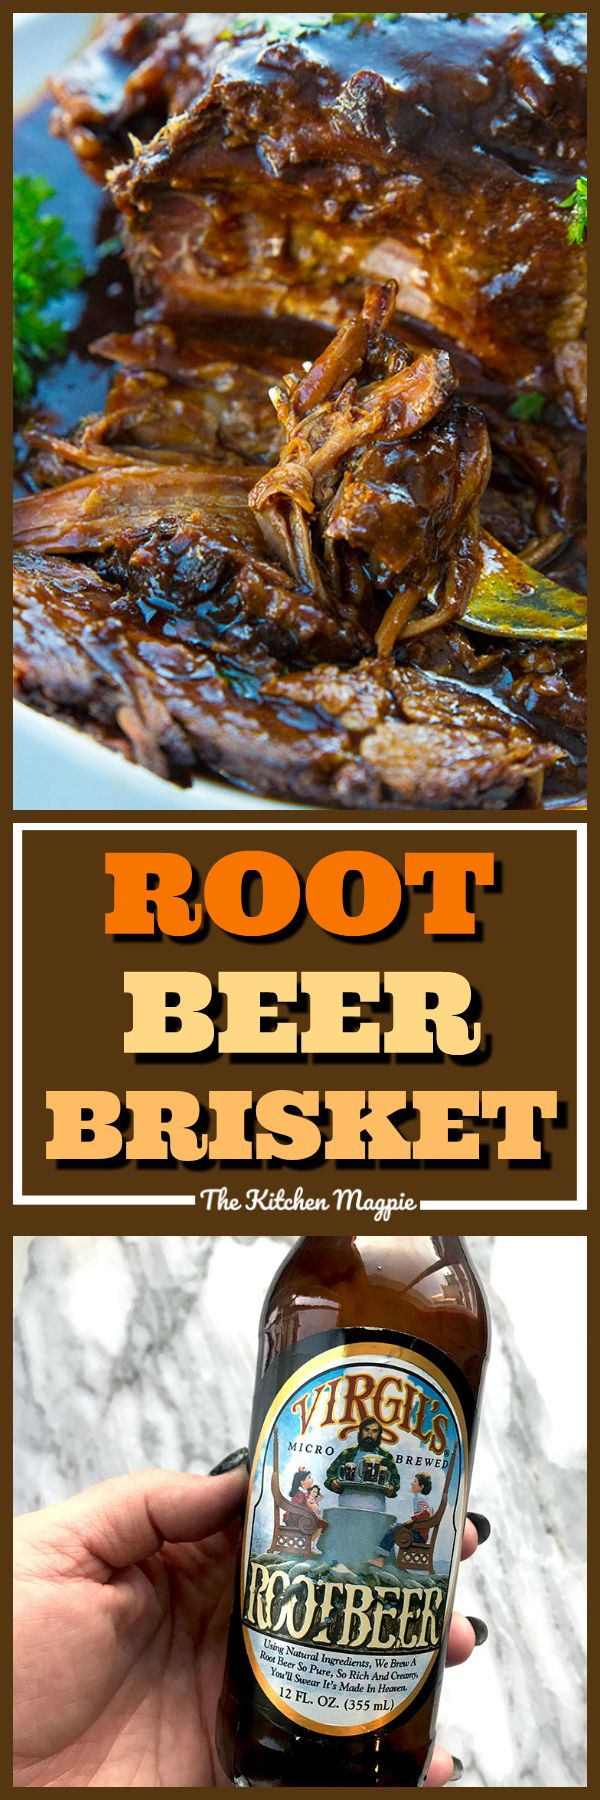 Root Beer BBQ Slow Cooker Brisketwill thrill kids and adults alike! Using root beer and BBQ sauce together makes this the easiest and tastiest slow cooker brisket you'll ever have! Put this on your permanent dinner rotation list!#brisket #rootbeer #slowcooker #crockpot